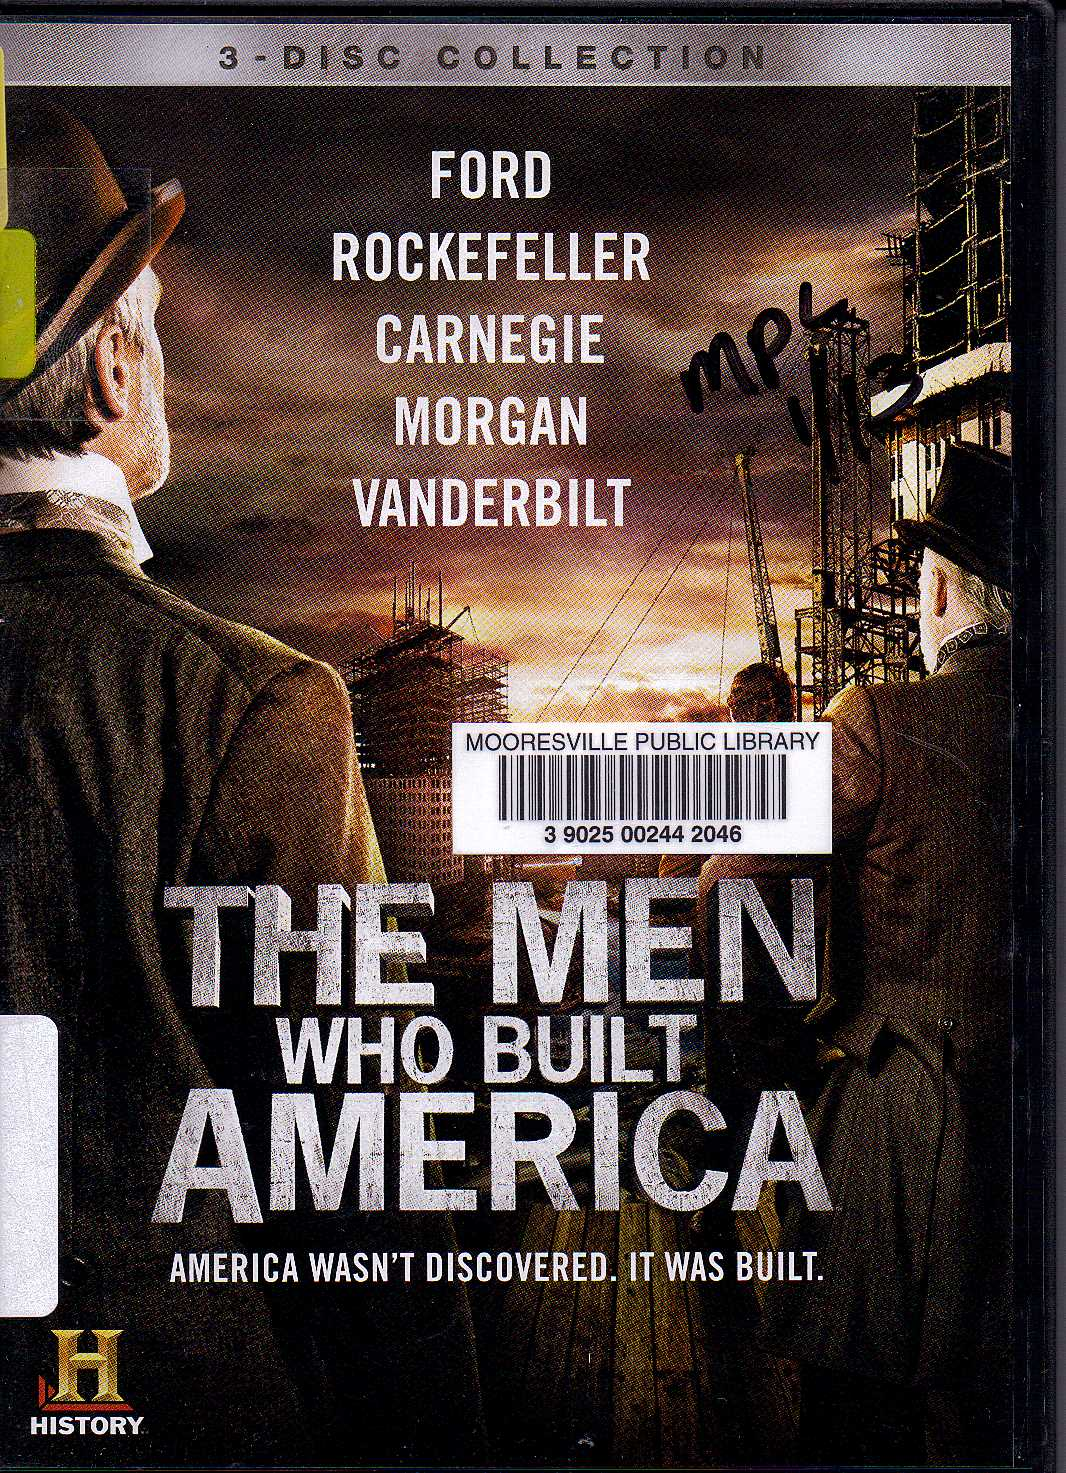 the man who built america